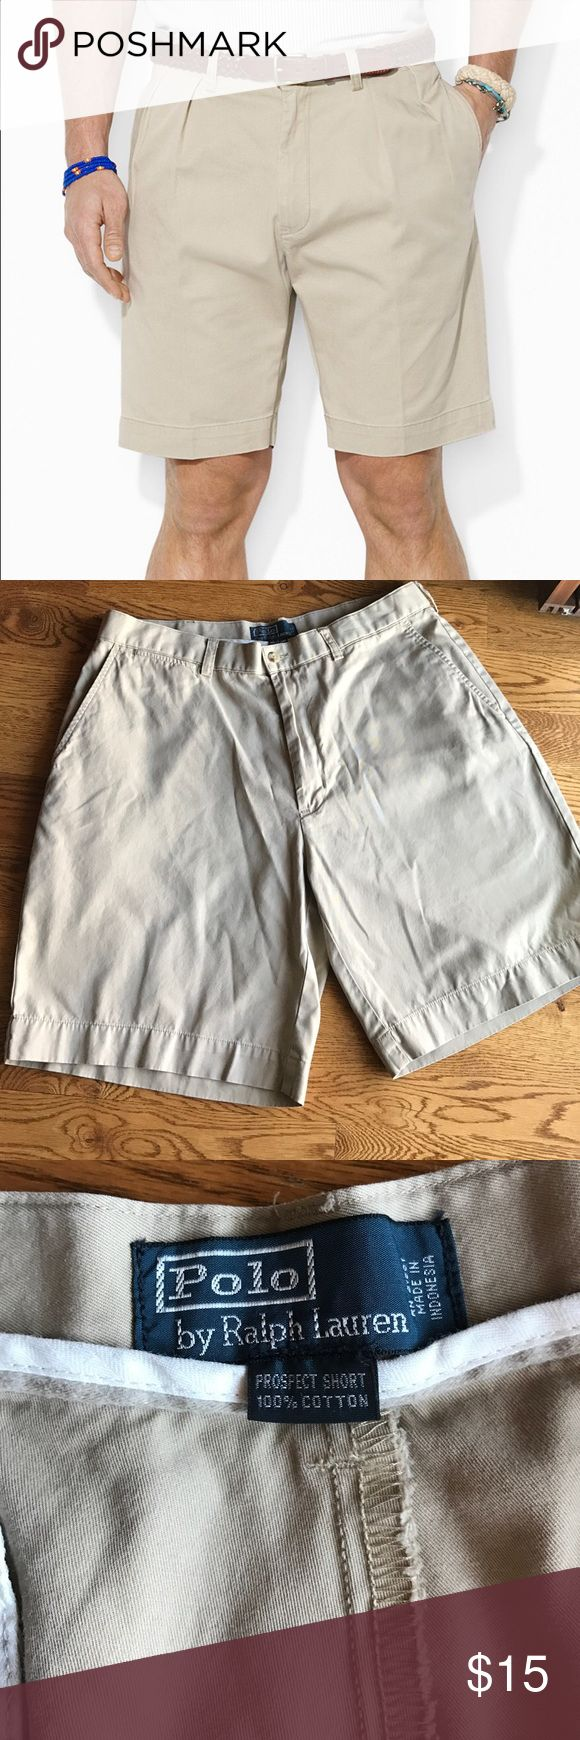 Polo Men's Dress shorts Excellent condition, Polo by Ralph Lauren tan dress men's shorts. Size 36. Discounts available if purchased in a bundle. Polo by Ralph Lauren Shorts Flat Front